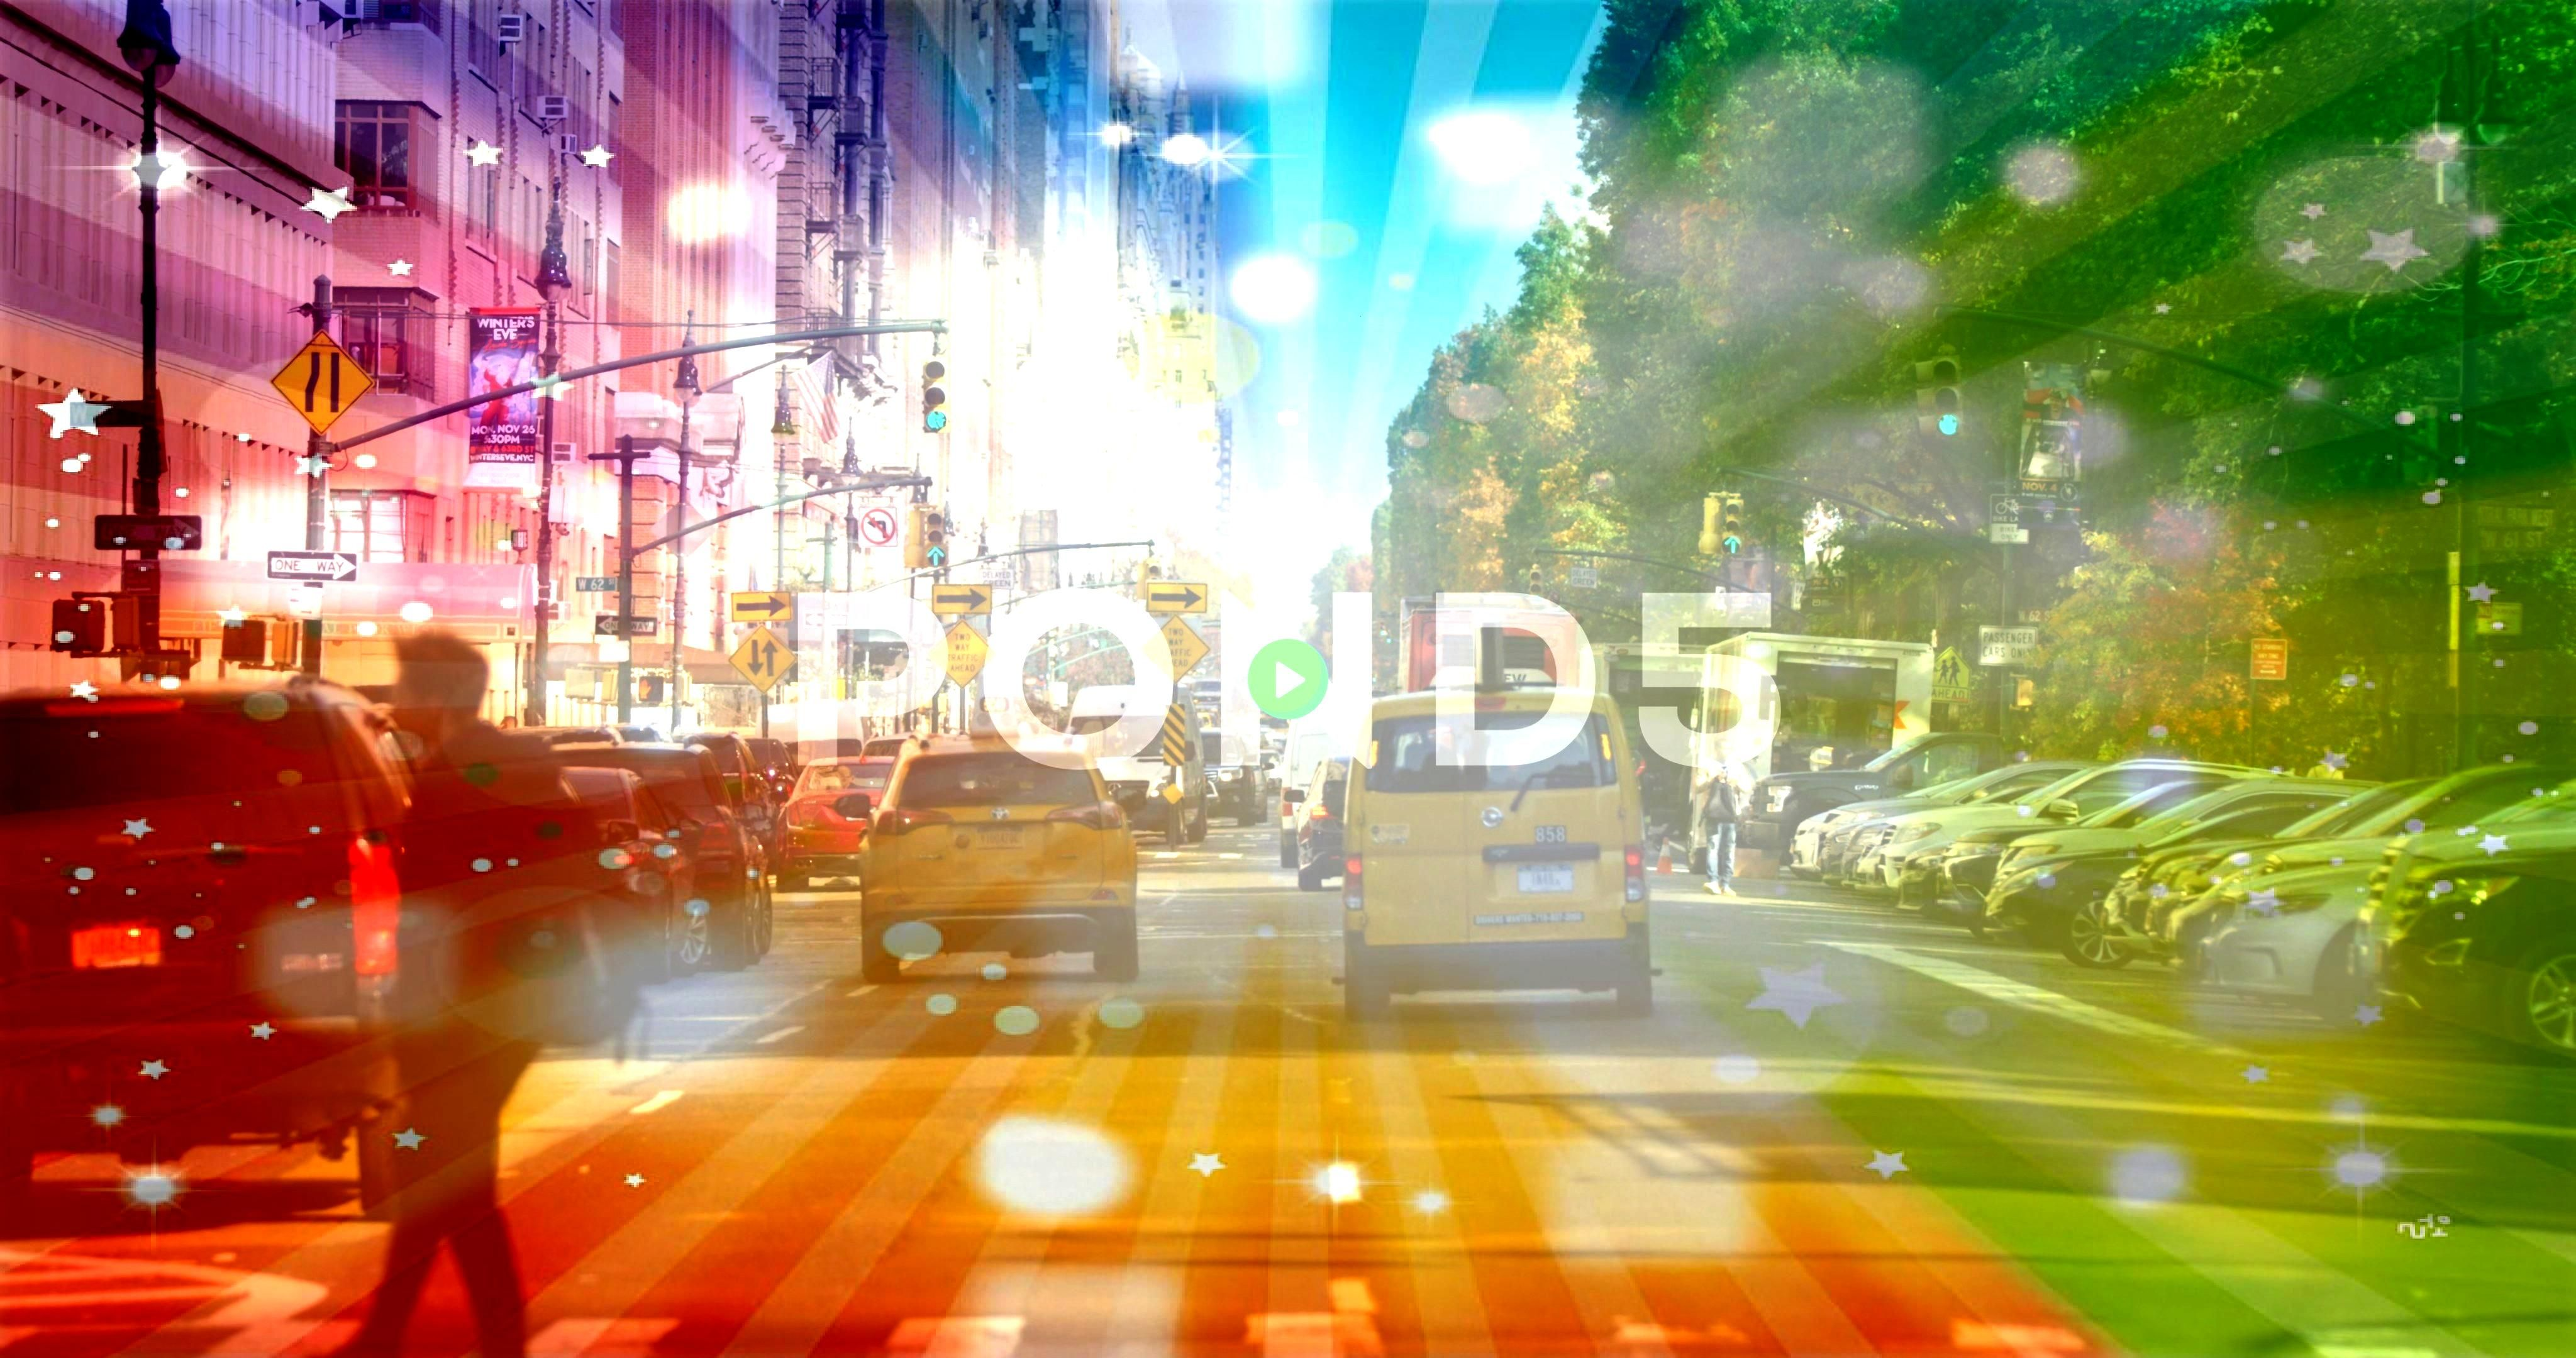 The Crossing On Busy Street In New York City Rush Hour Traffic Stock Footage StreetYorkBusyPeoplePeople Crossing The Crossing On Busy Street In New York City Rush Hour Tr...